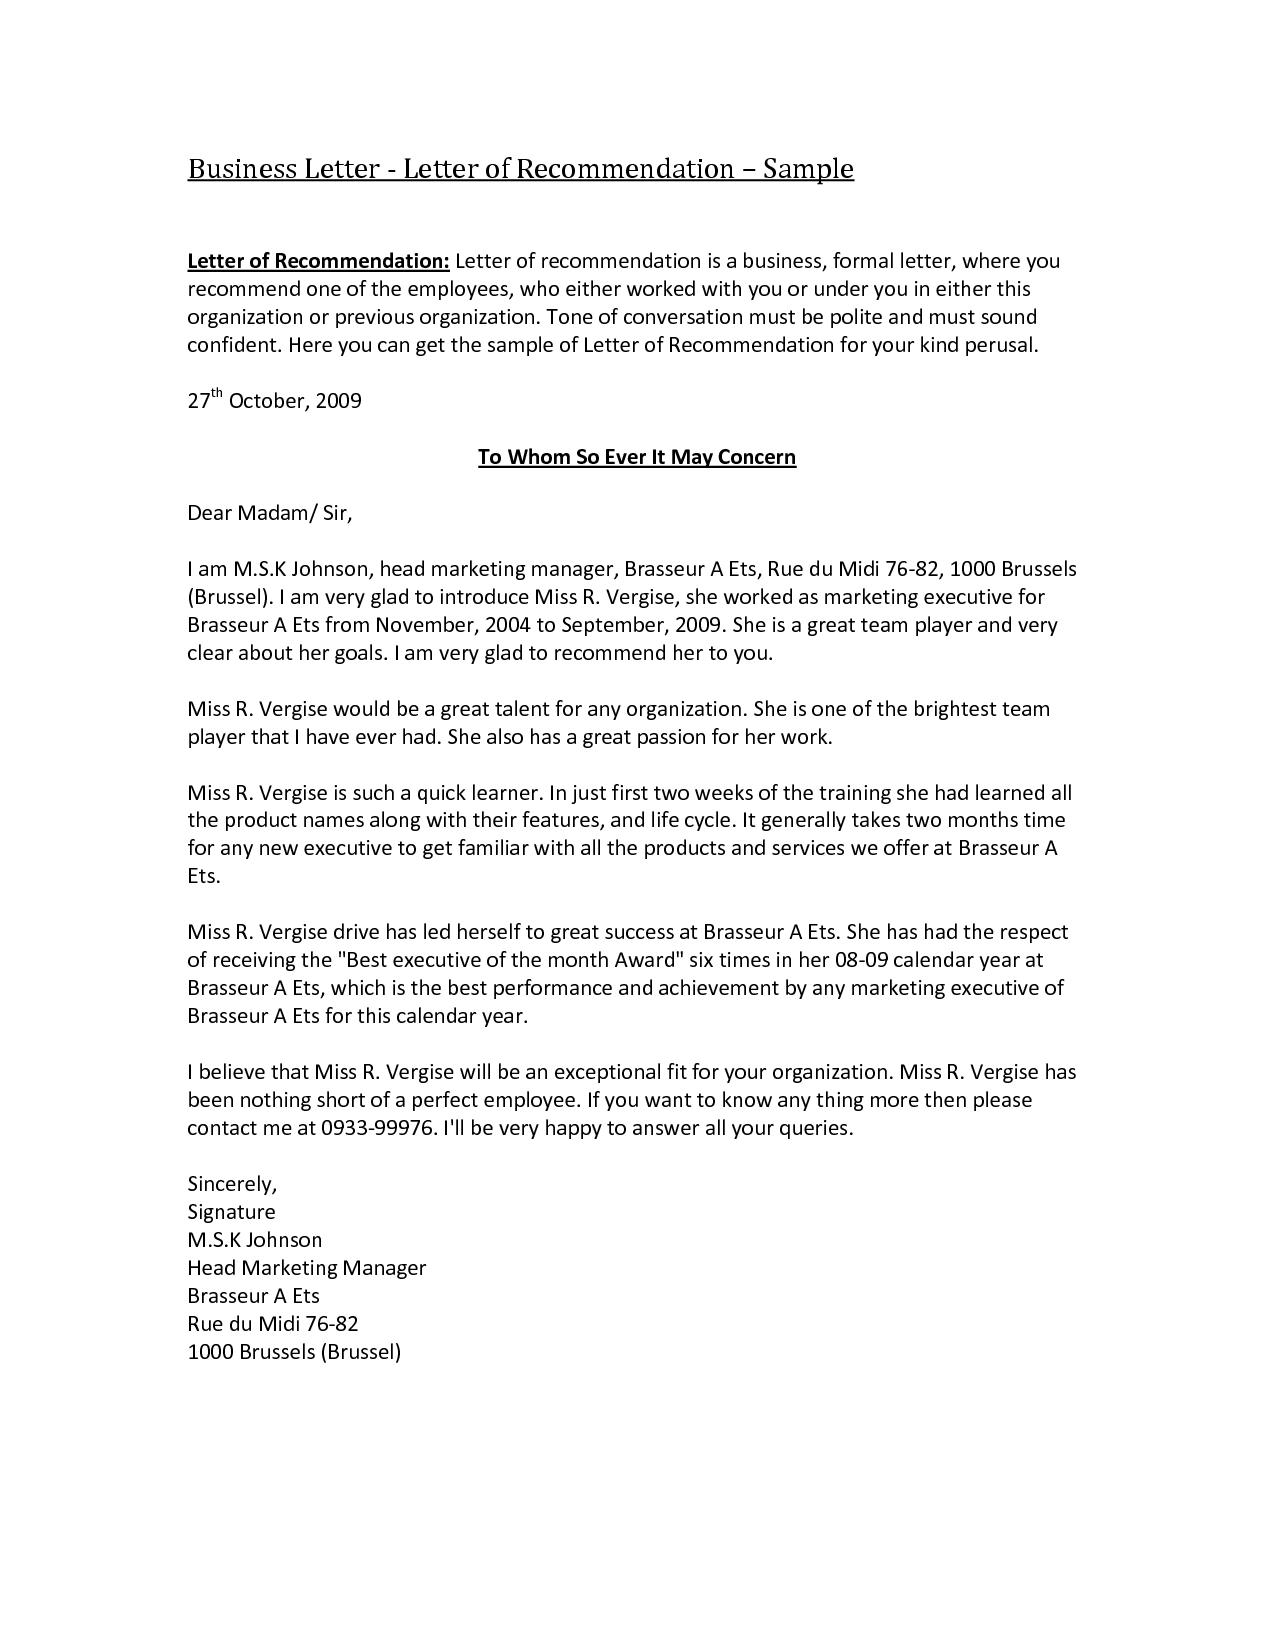 Business Recommendation Letter Template - Business Re Mendation Letter Template Acurnamedia